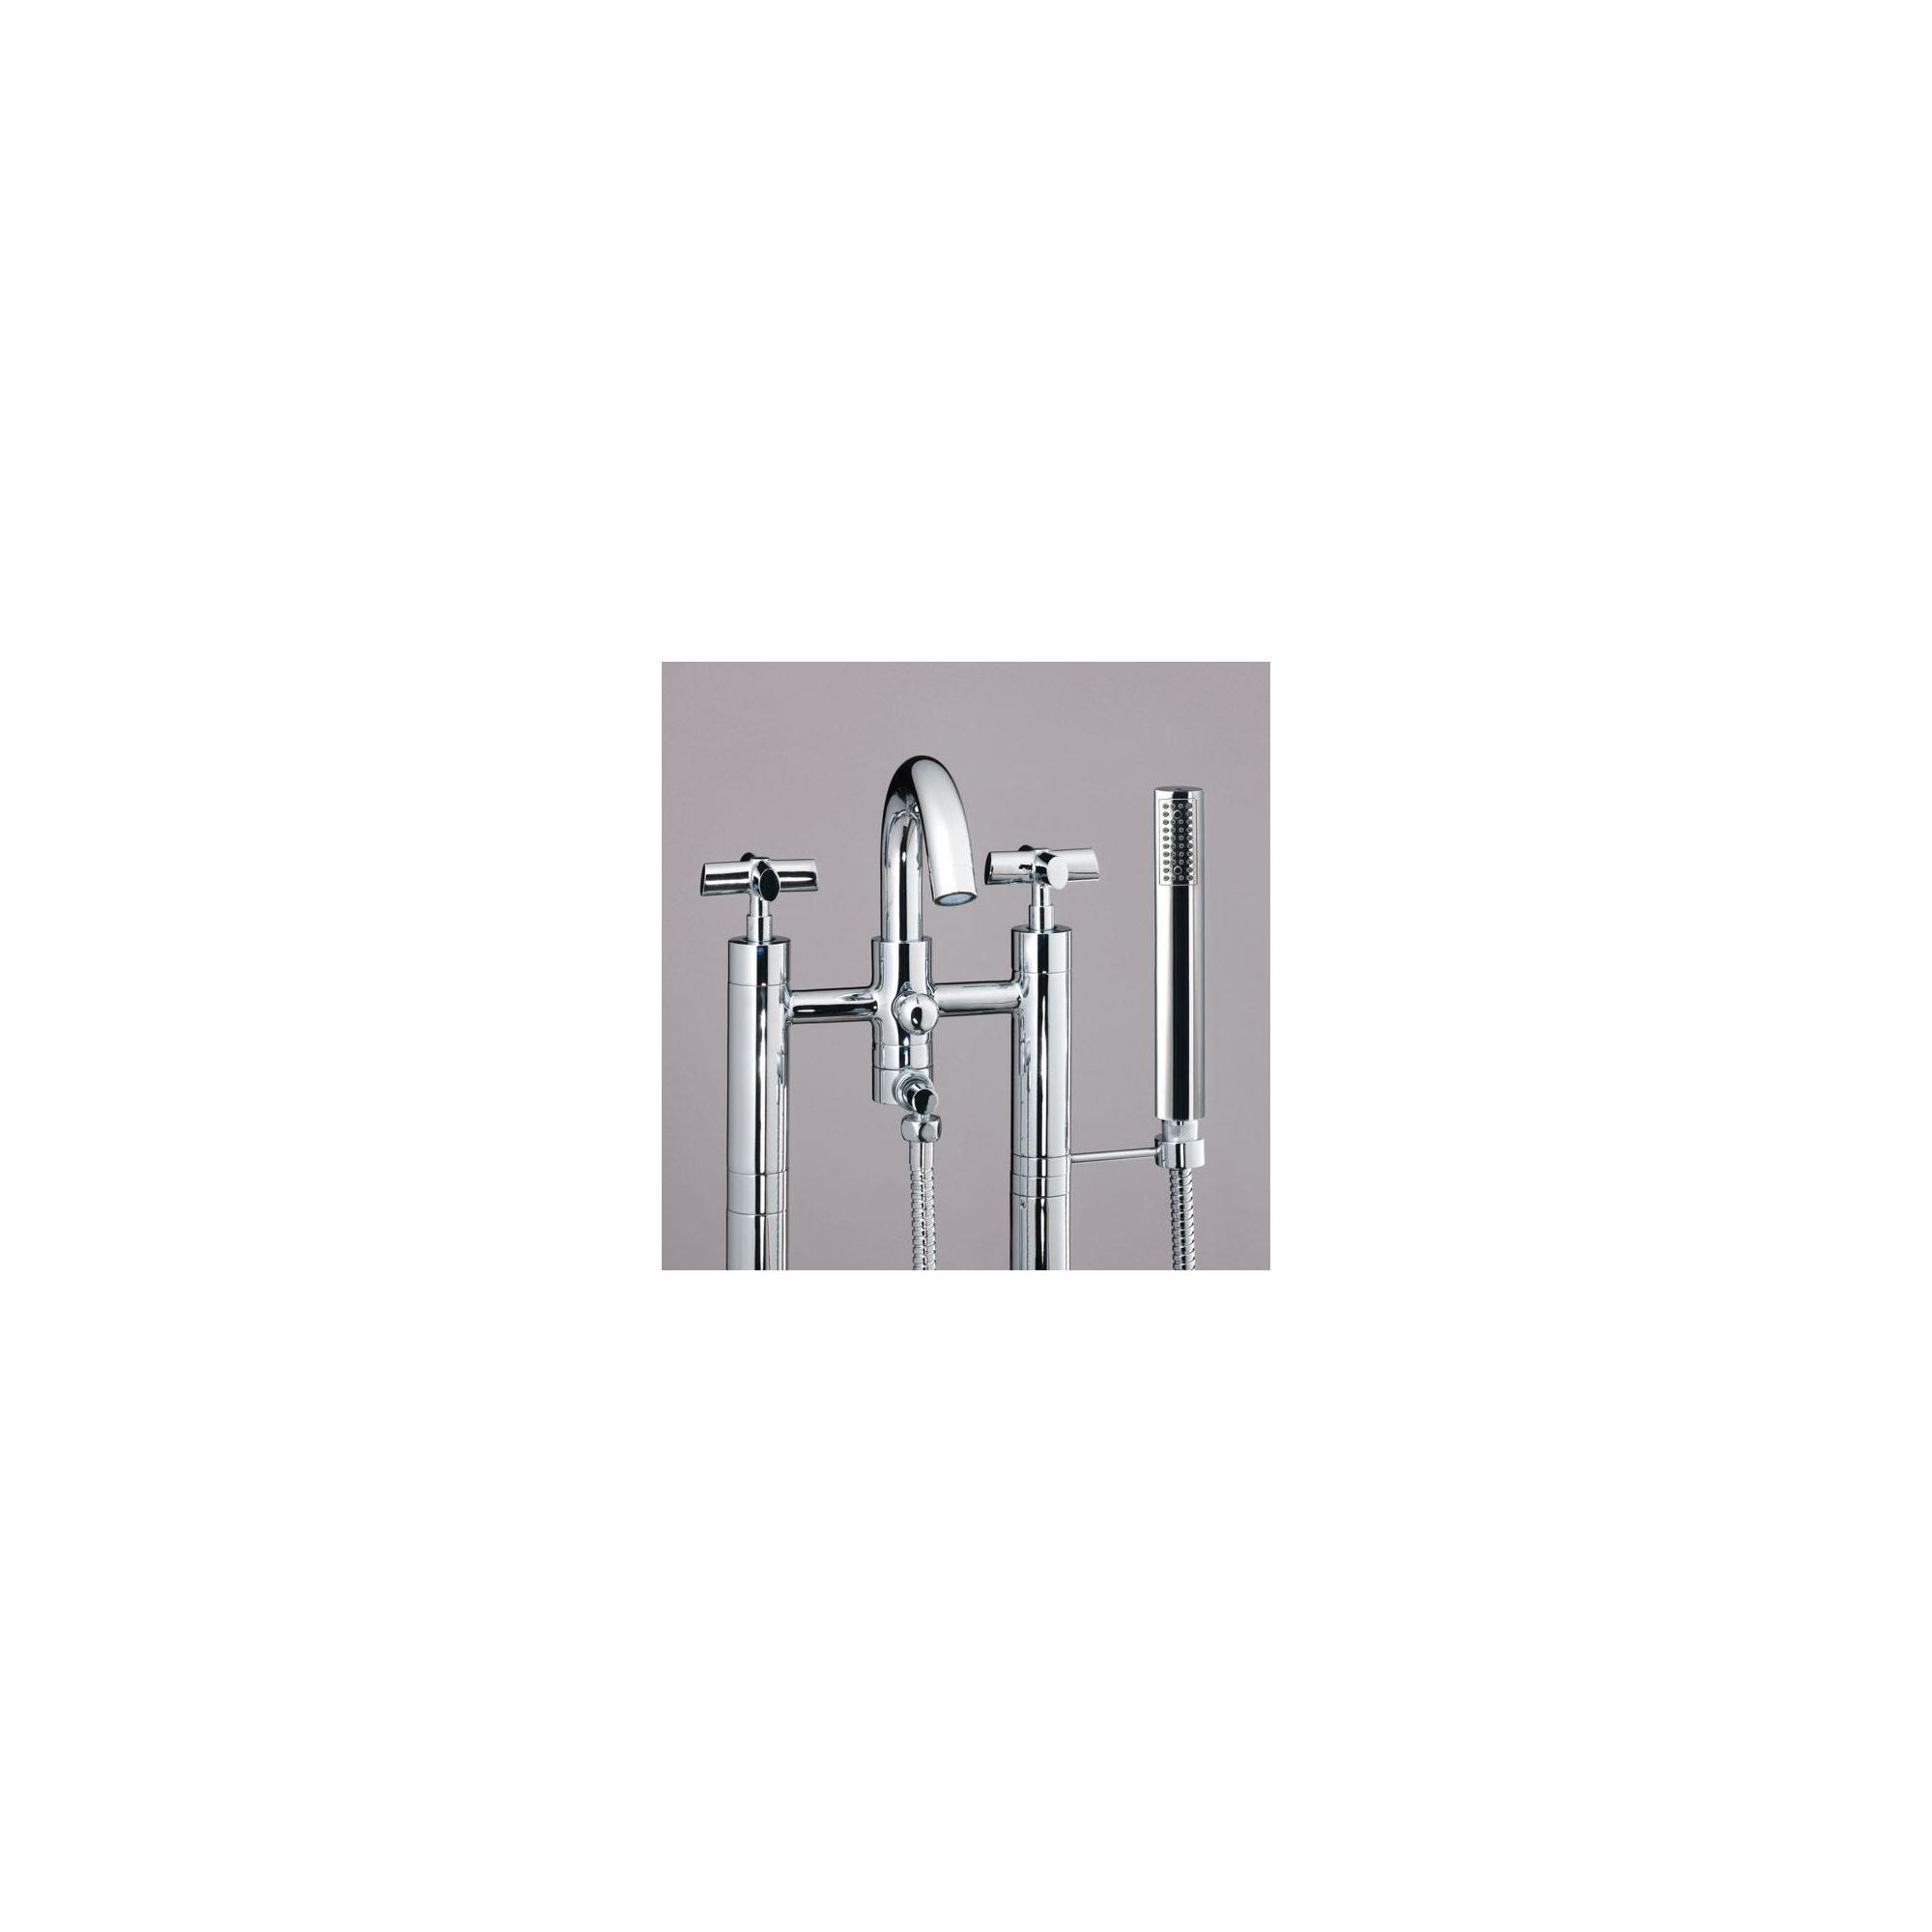 BC Sanitan Highgrove Bath/Shower Mixer Chrome at Tescos Direct